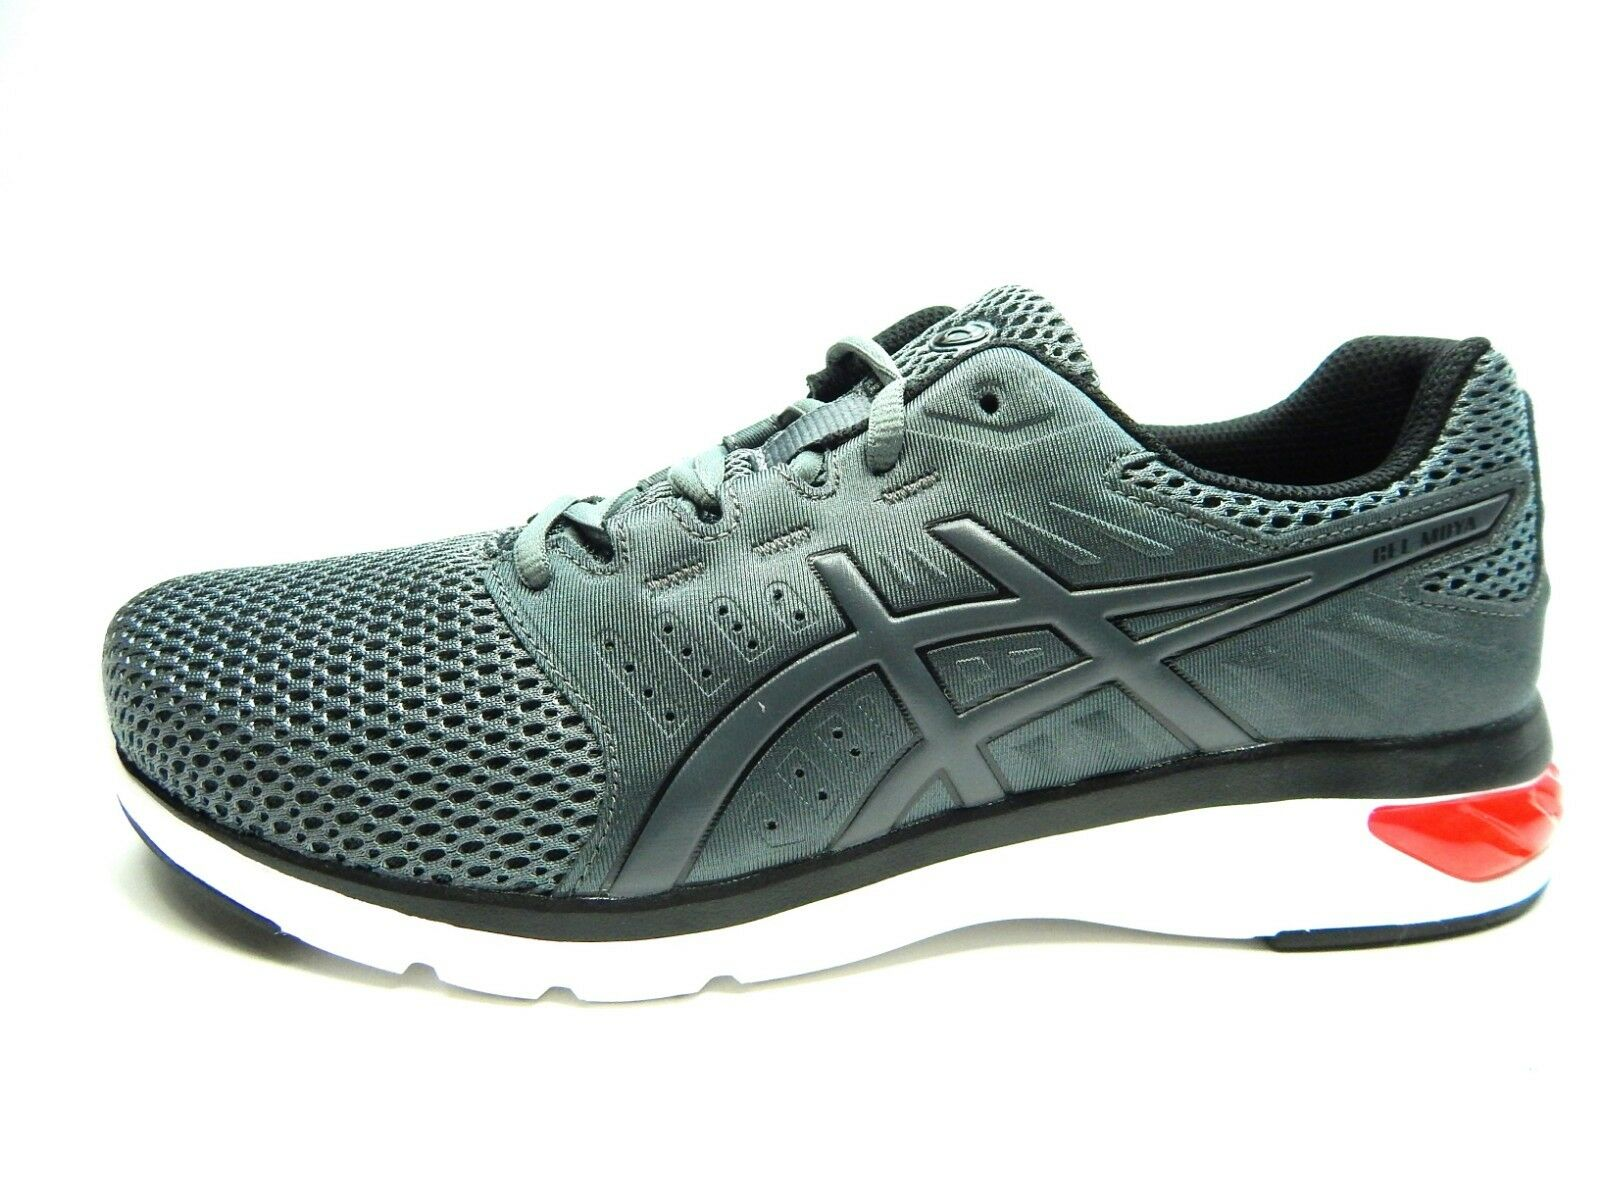 ASICS Gel Moya Carbon classic red Uomo shoes T841N-9797